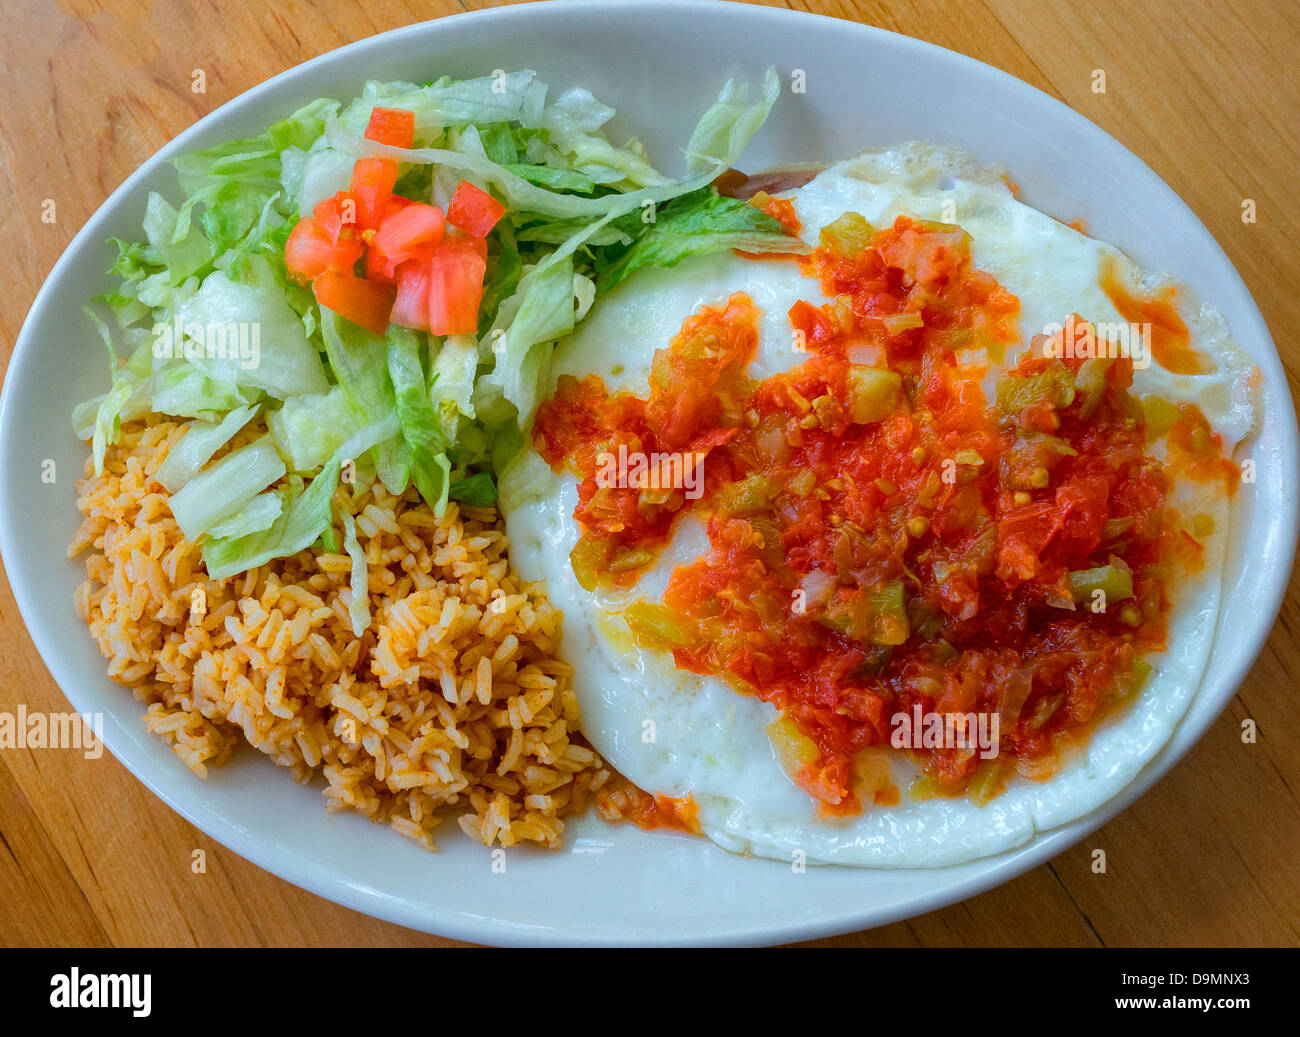 Mexican style eggs or Huevos Rancheros - Stock Image